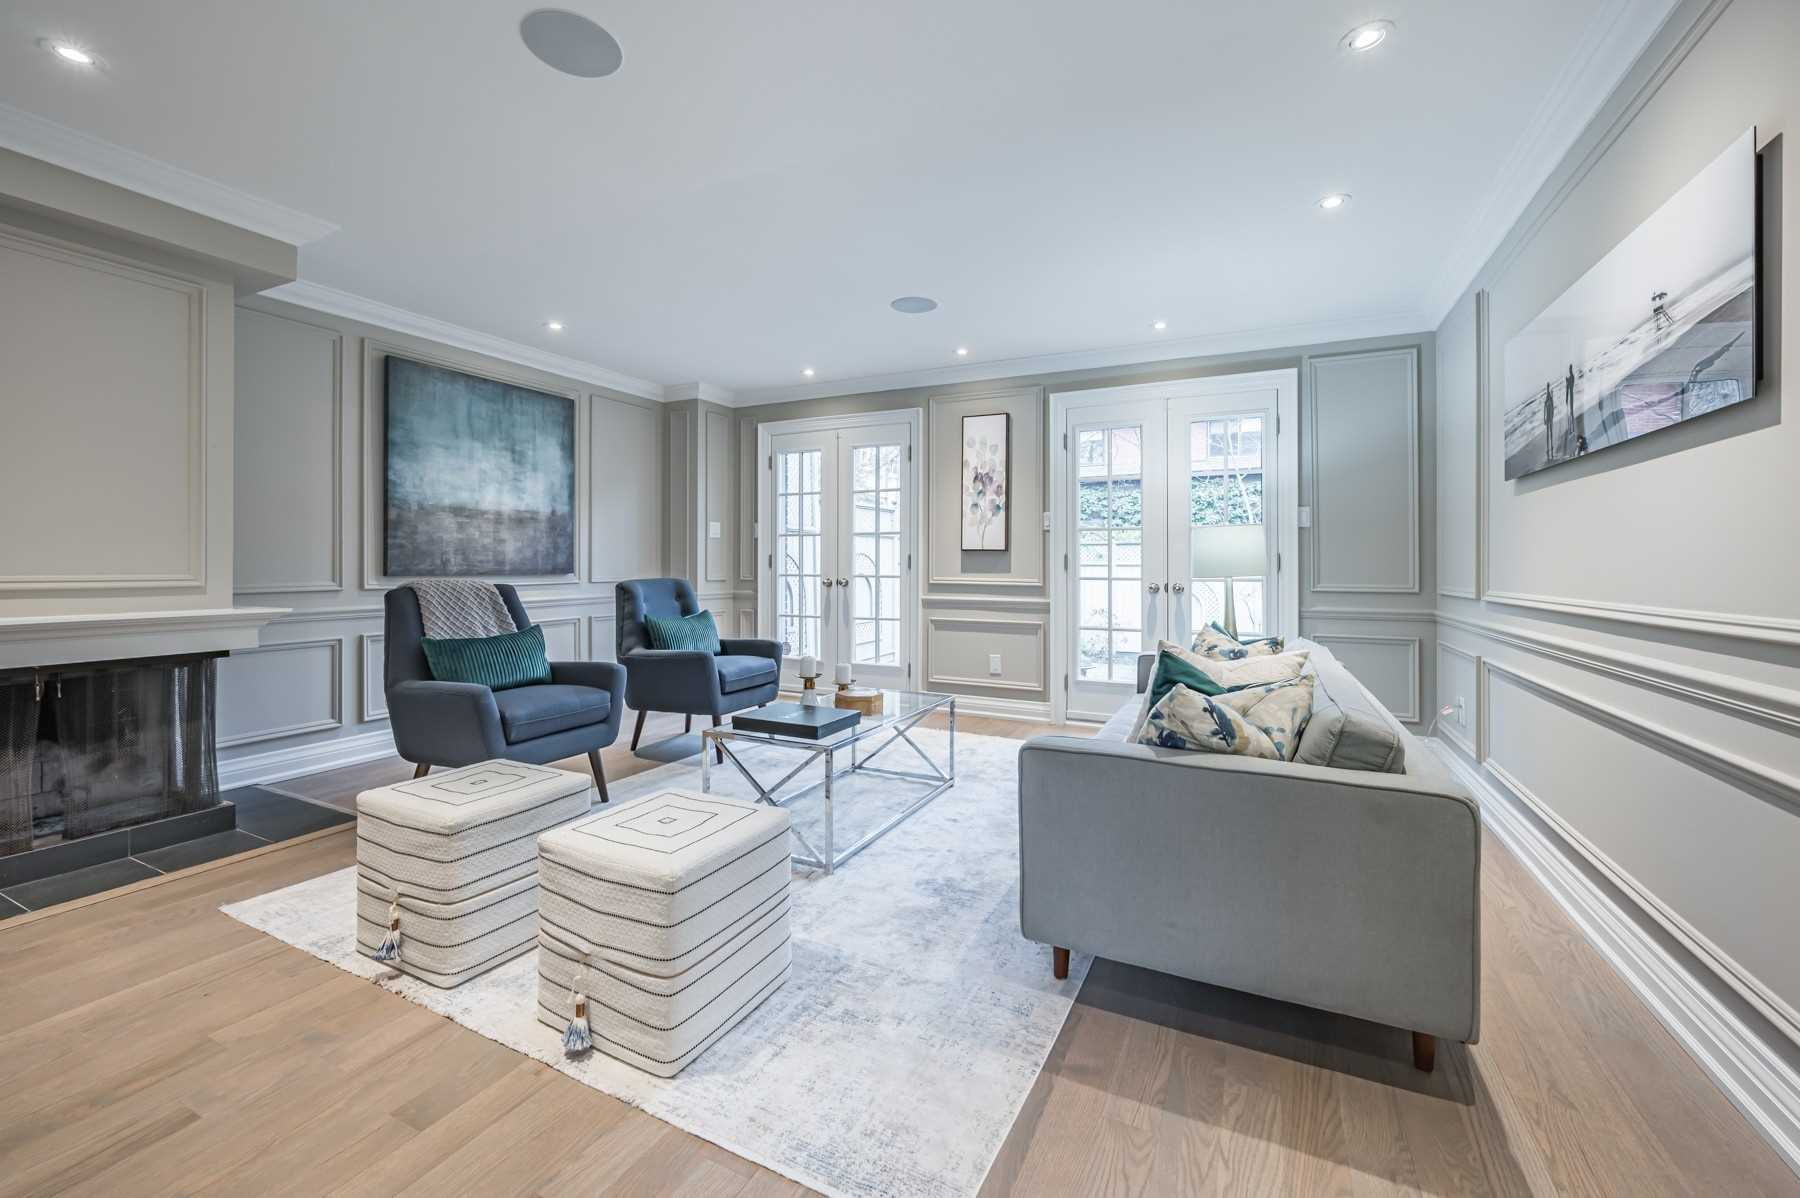 44A Maple Ave, Toronto, M4N2T7